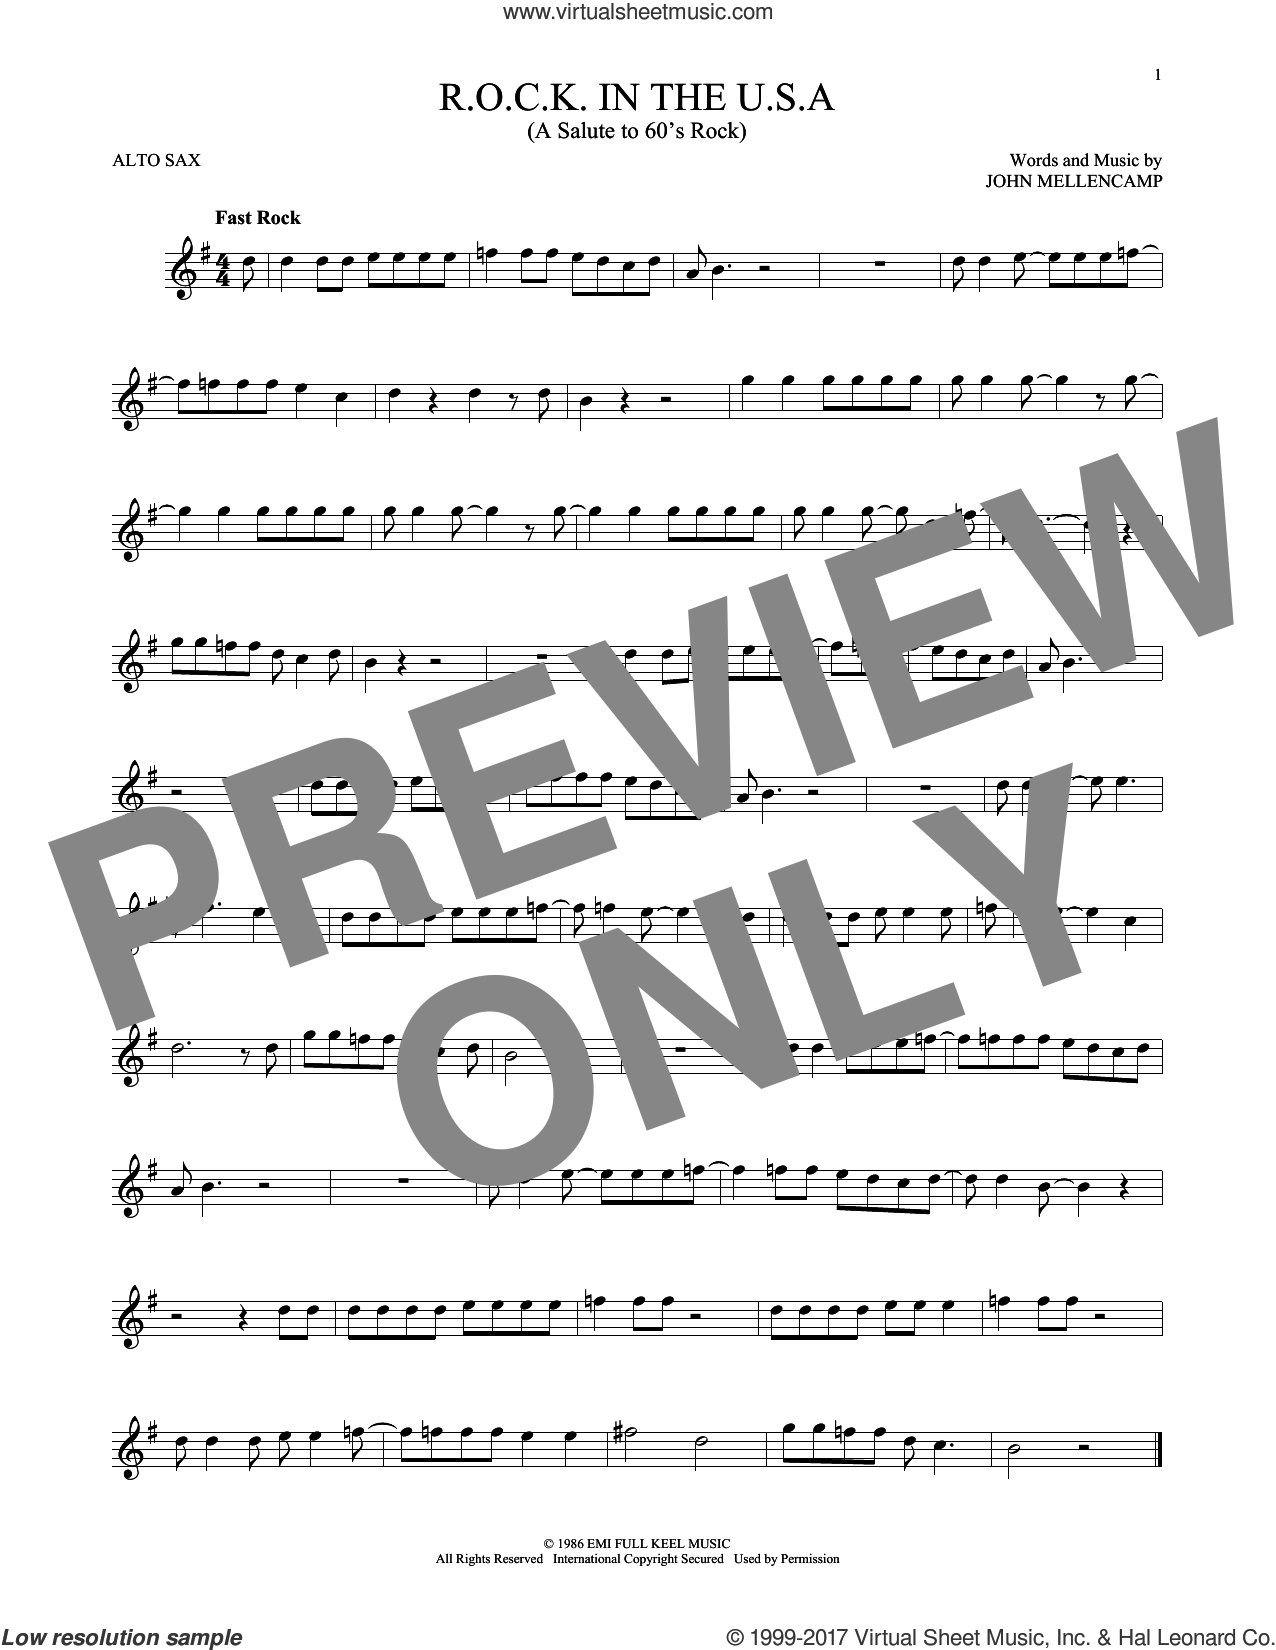 R.O.C.K. In The U.S.A. (A Salute To 60's Rock) sheet music for alto saxophone solo by John Mellencamp, intermediate skill level